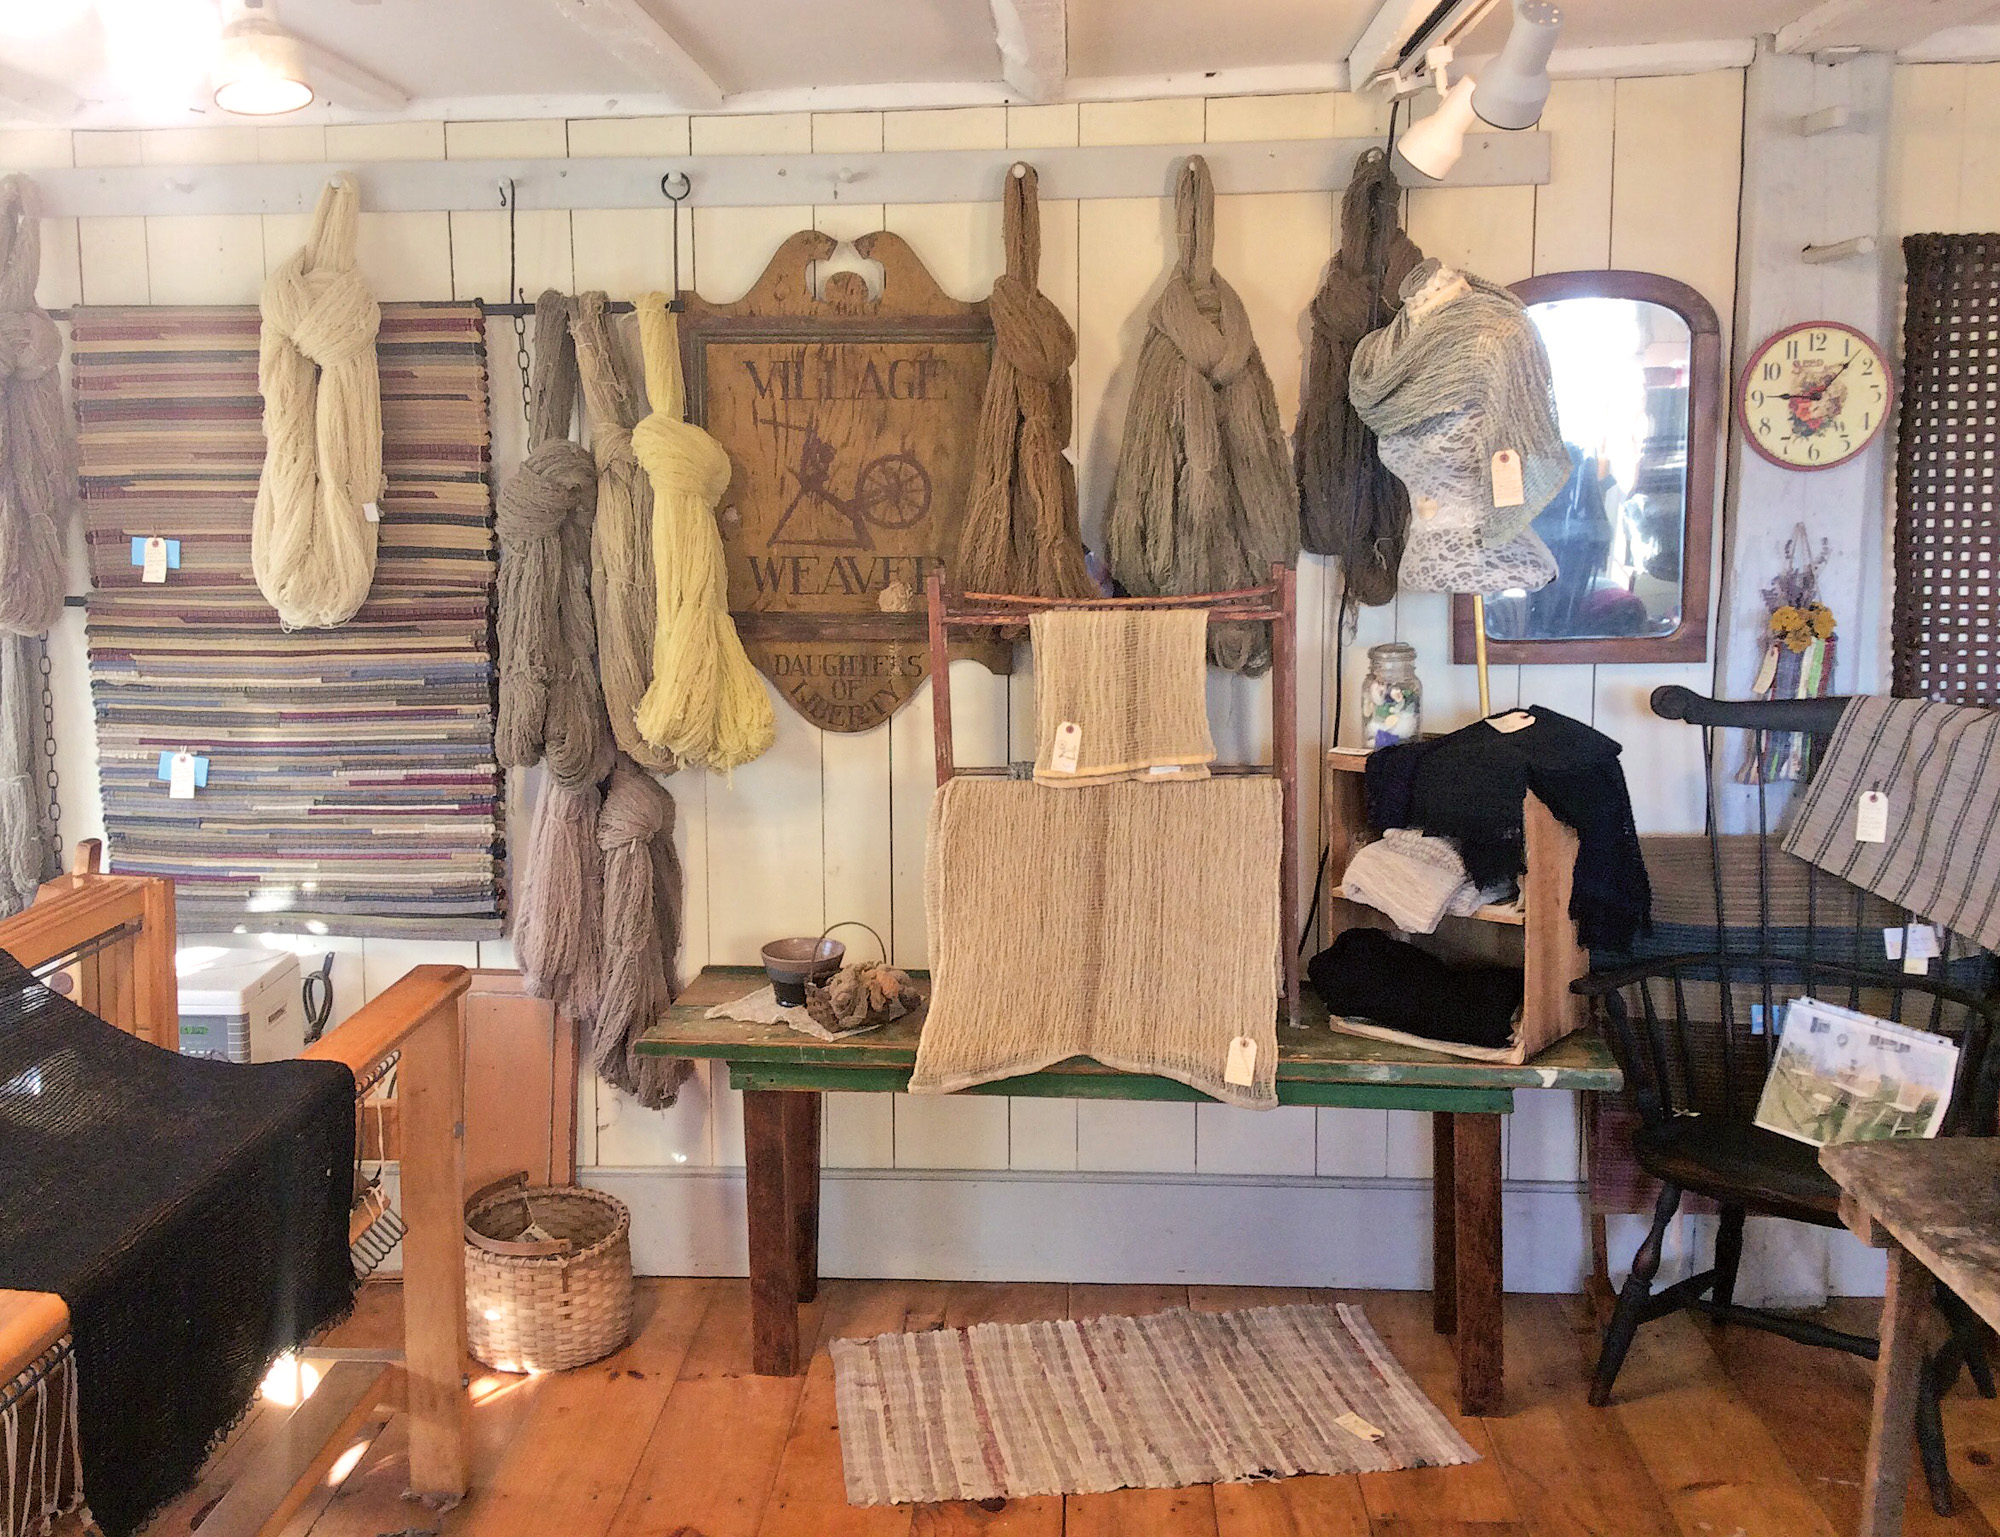 shop interior, Maine's Village Weaver